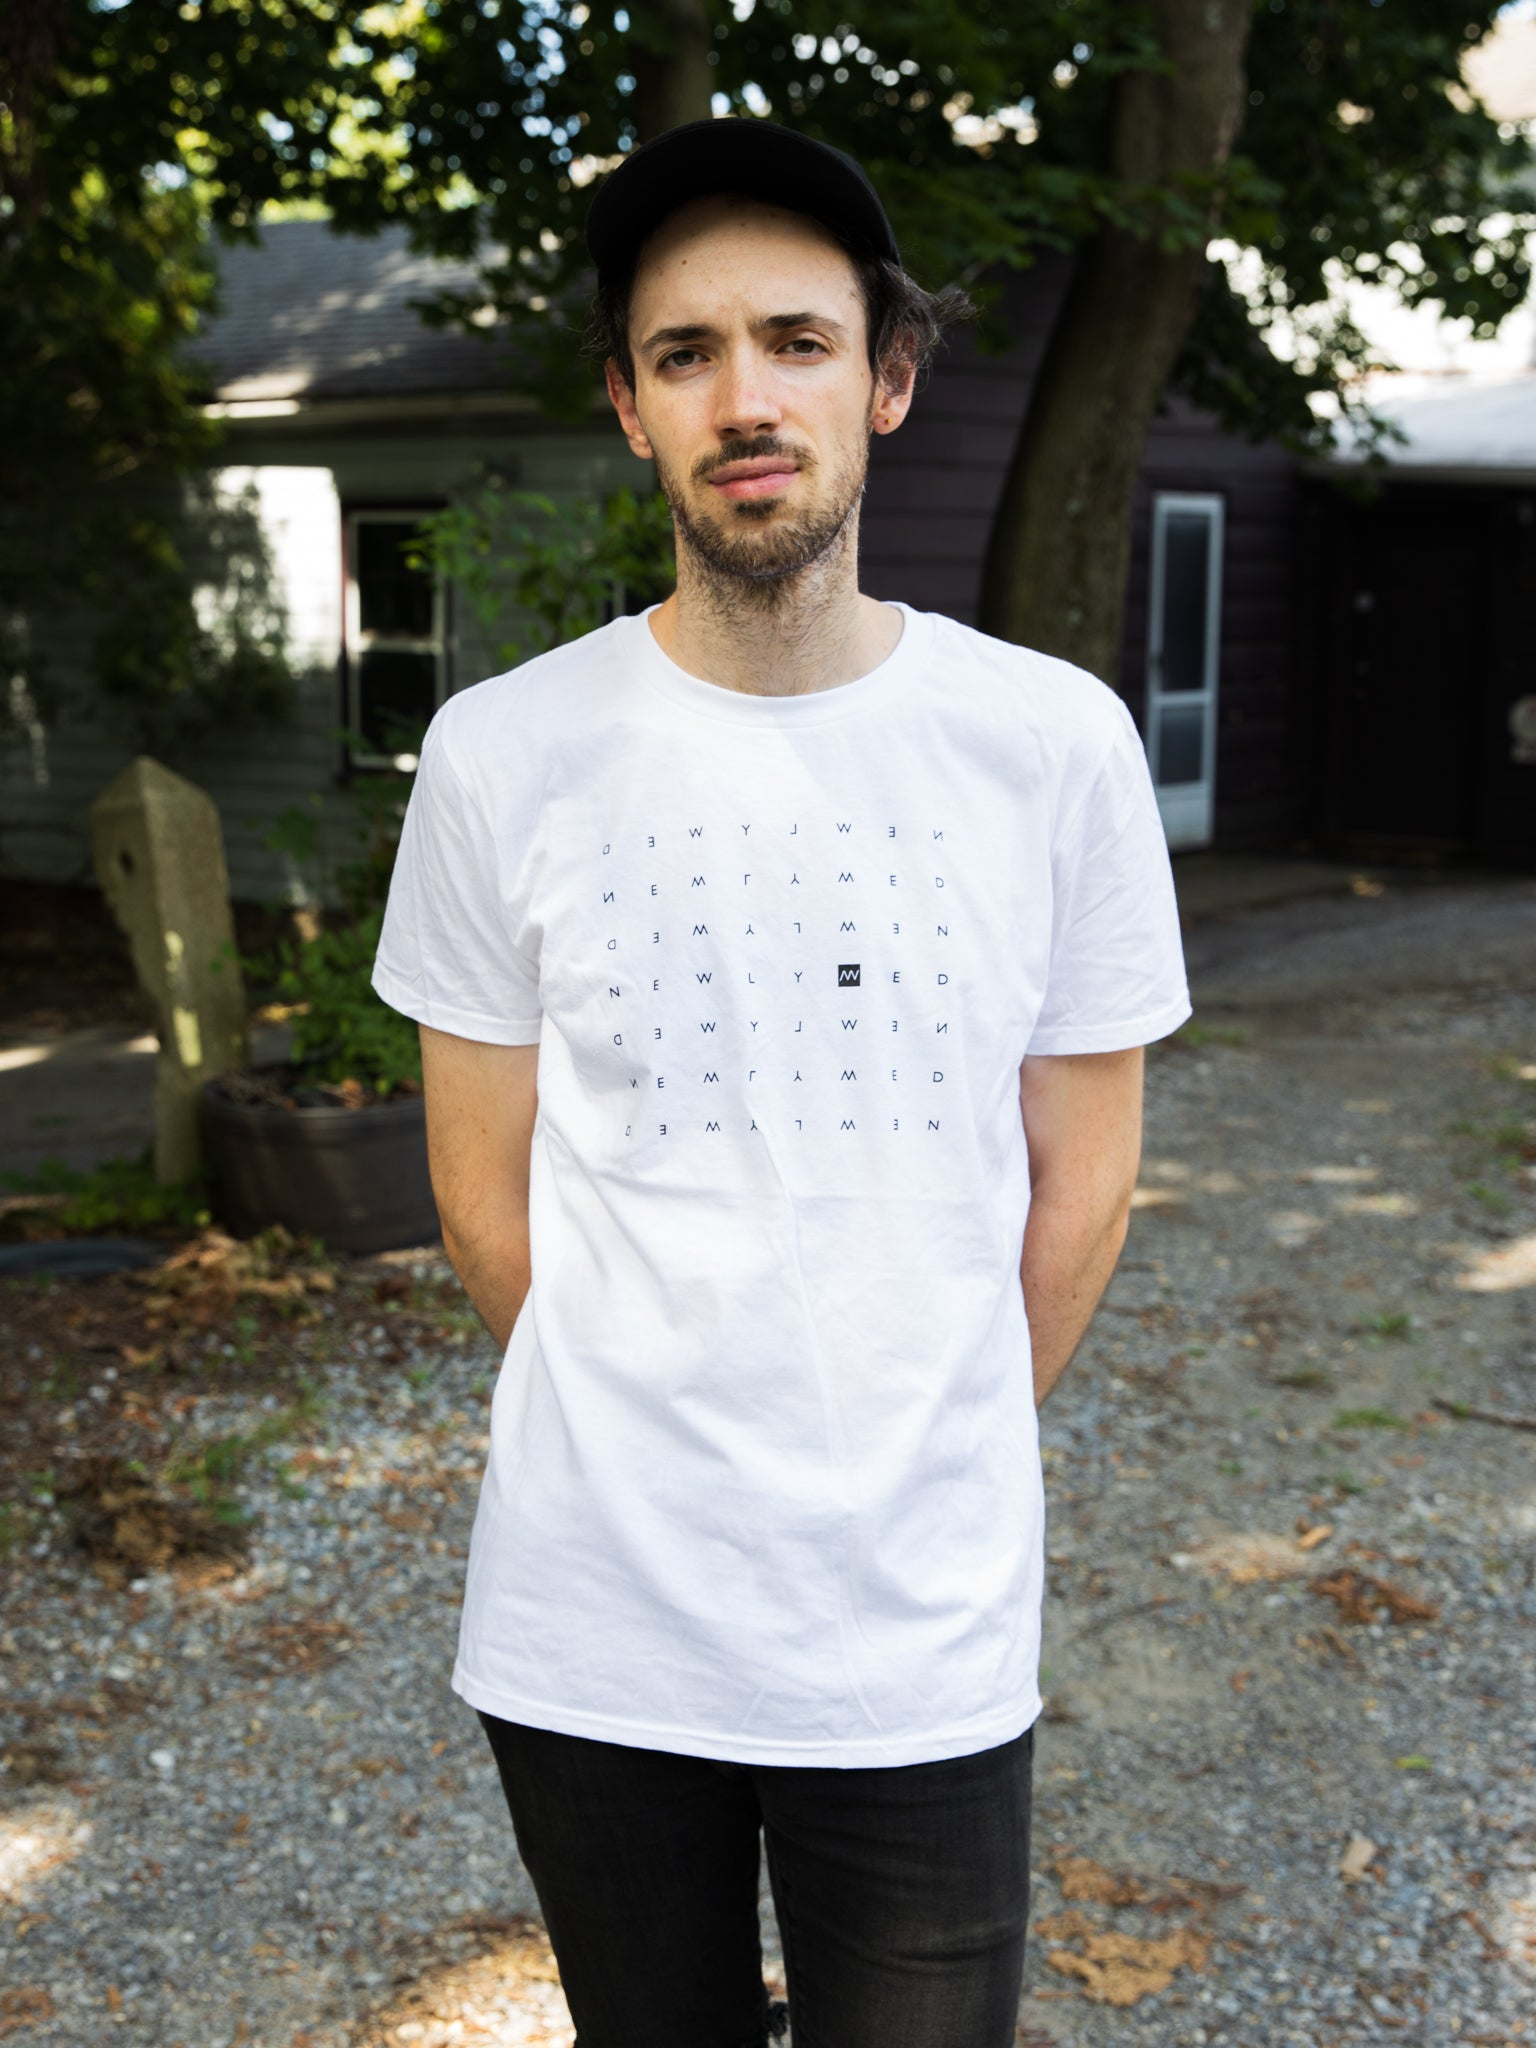 Newlywed Crossword Tee